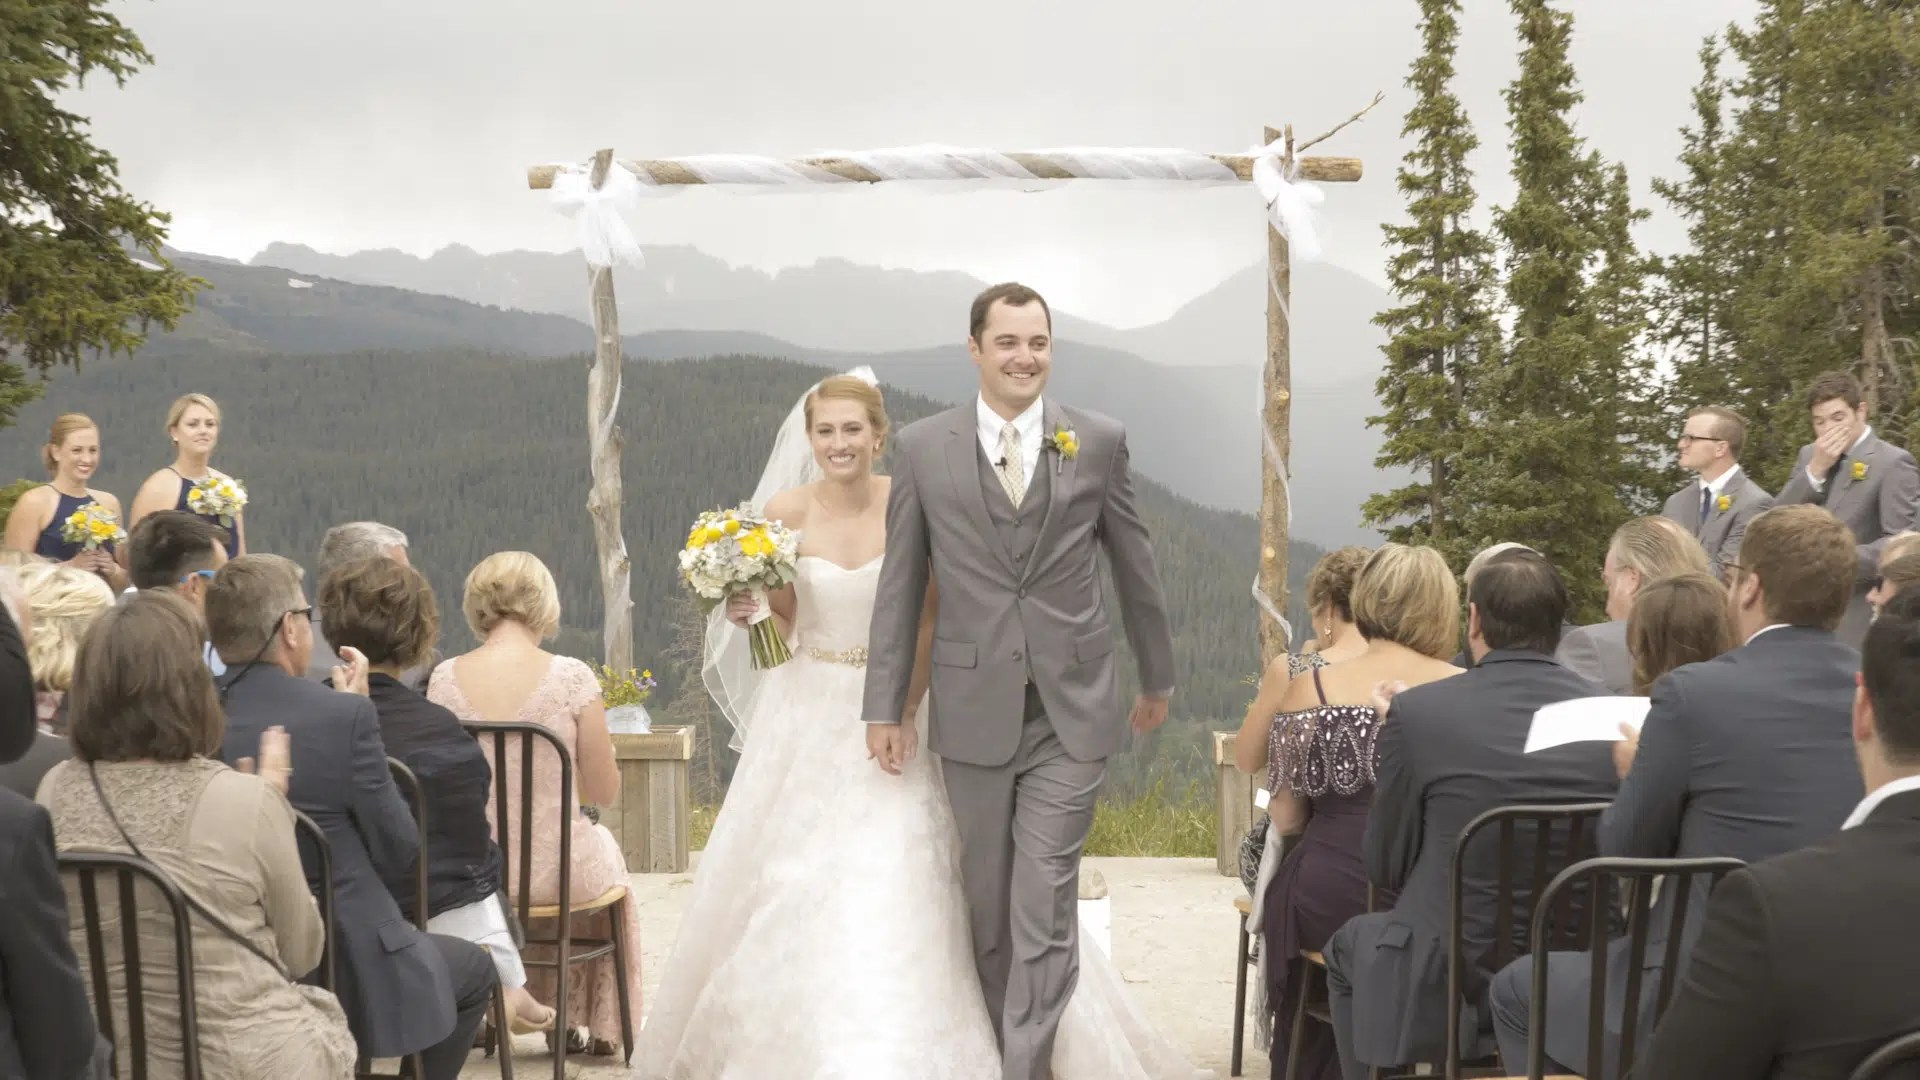 Sarah Jesse Copper Mountain Wedding Stills NOMARK